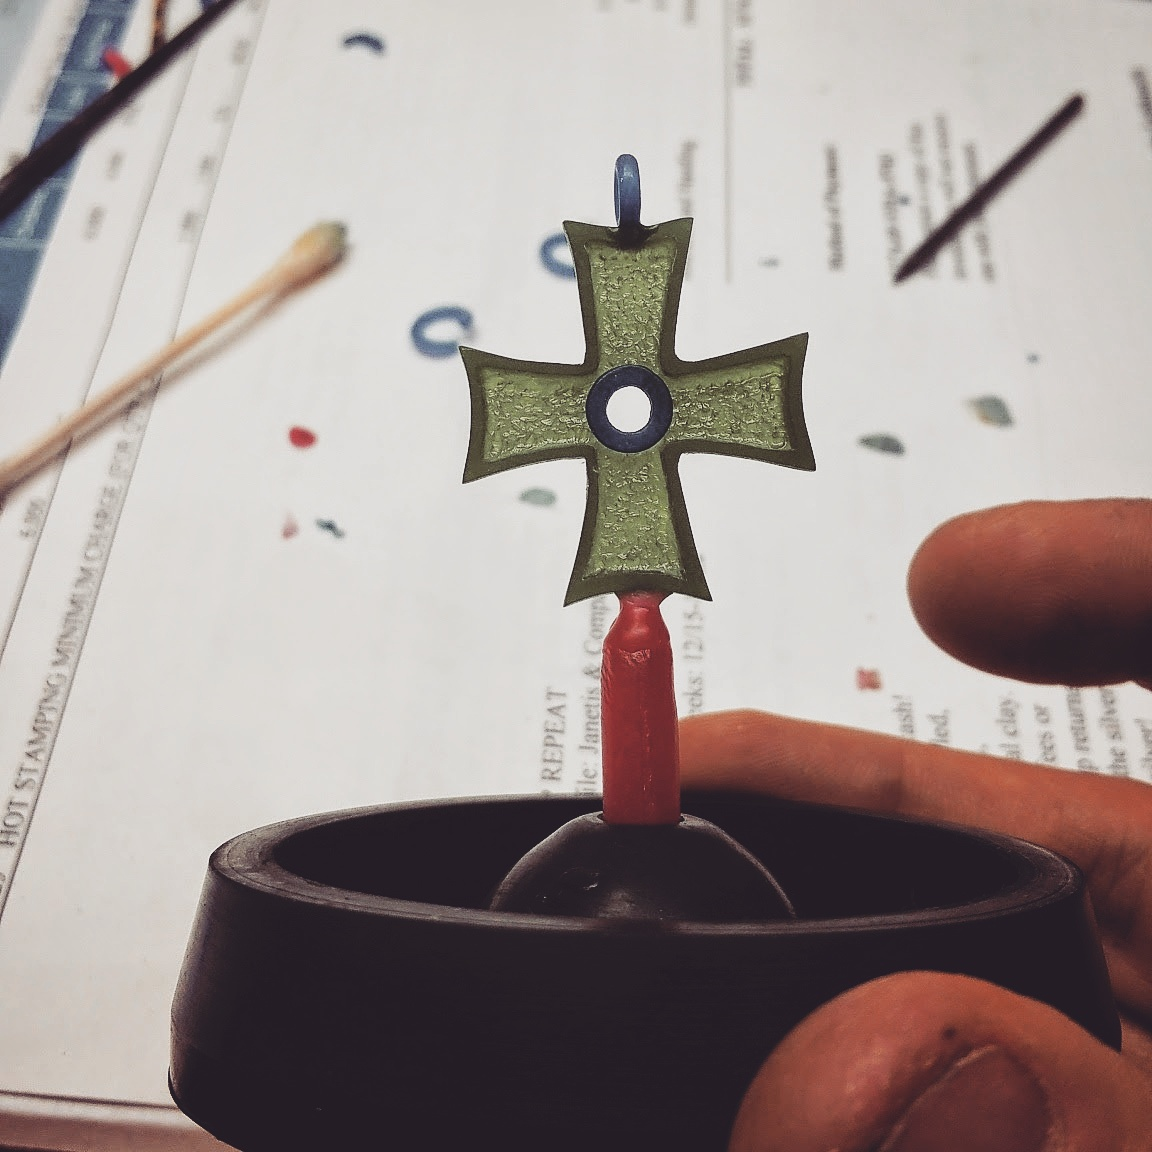 Wax carving of a new greek cross design for the Anastasis collection at J&Co. This cross will be cast in yellow gold and contain a 5mm almandine garnet cabochon as the center stone #janetiscompany #gold #greek #greekcross #cross #JEWELRY #jewelrydesign